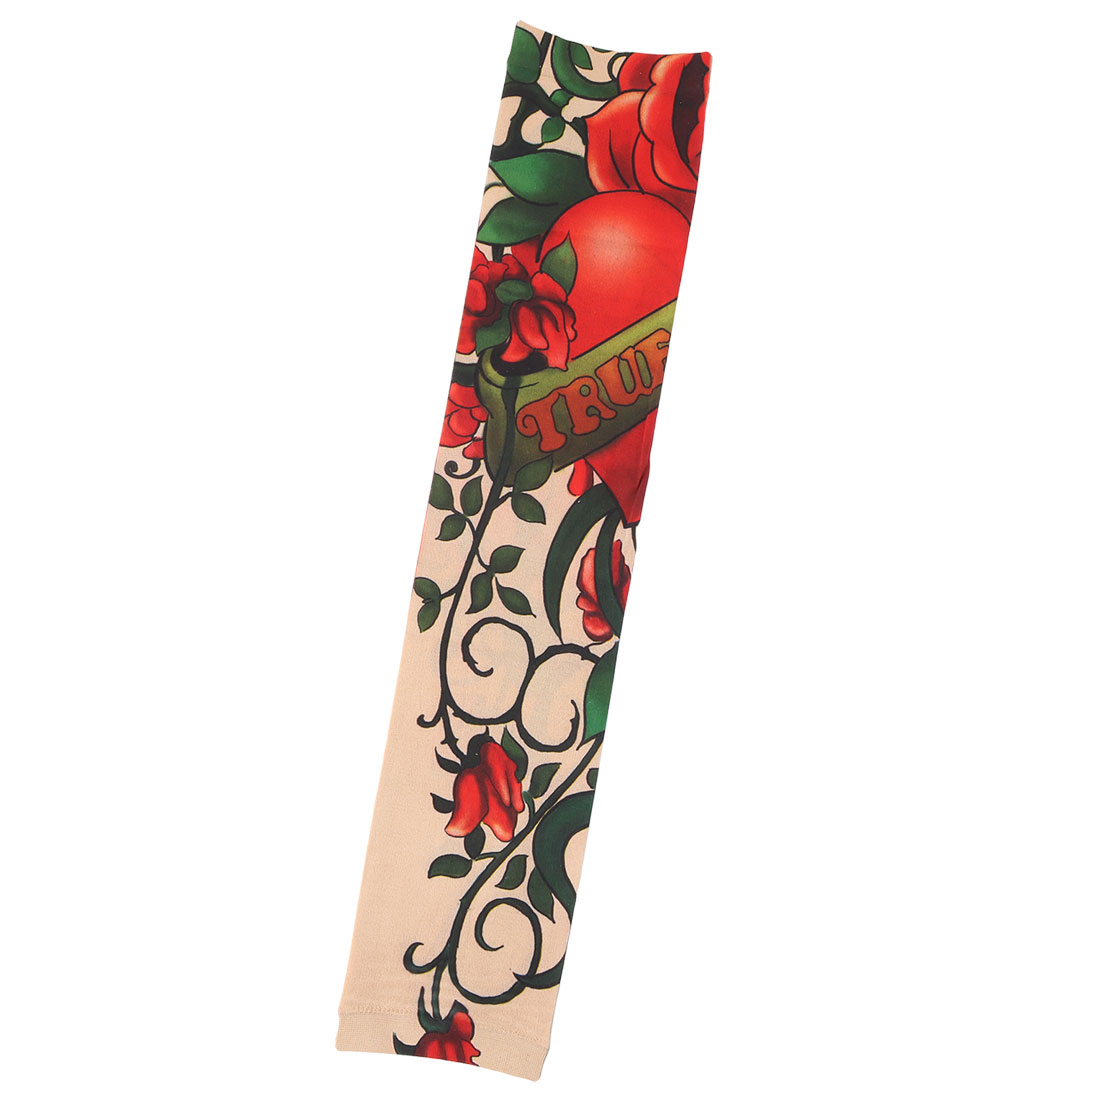 Outdoor Flower Pattern Hiking Running Stretchy Arm Protector Sun Protection Sleeve